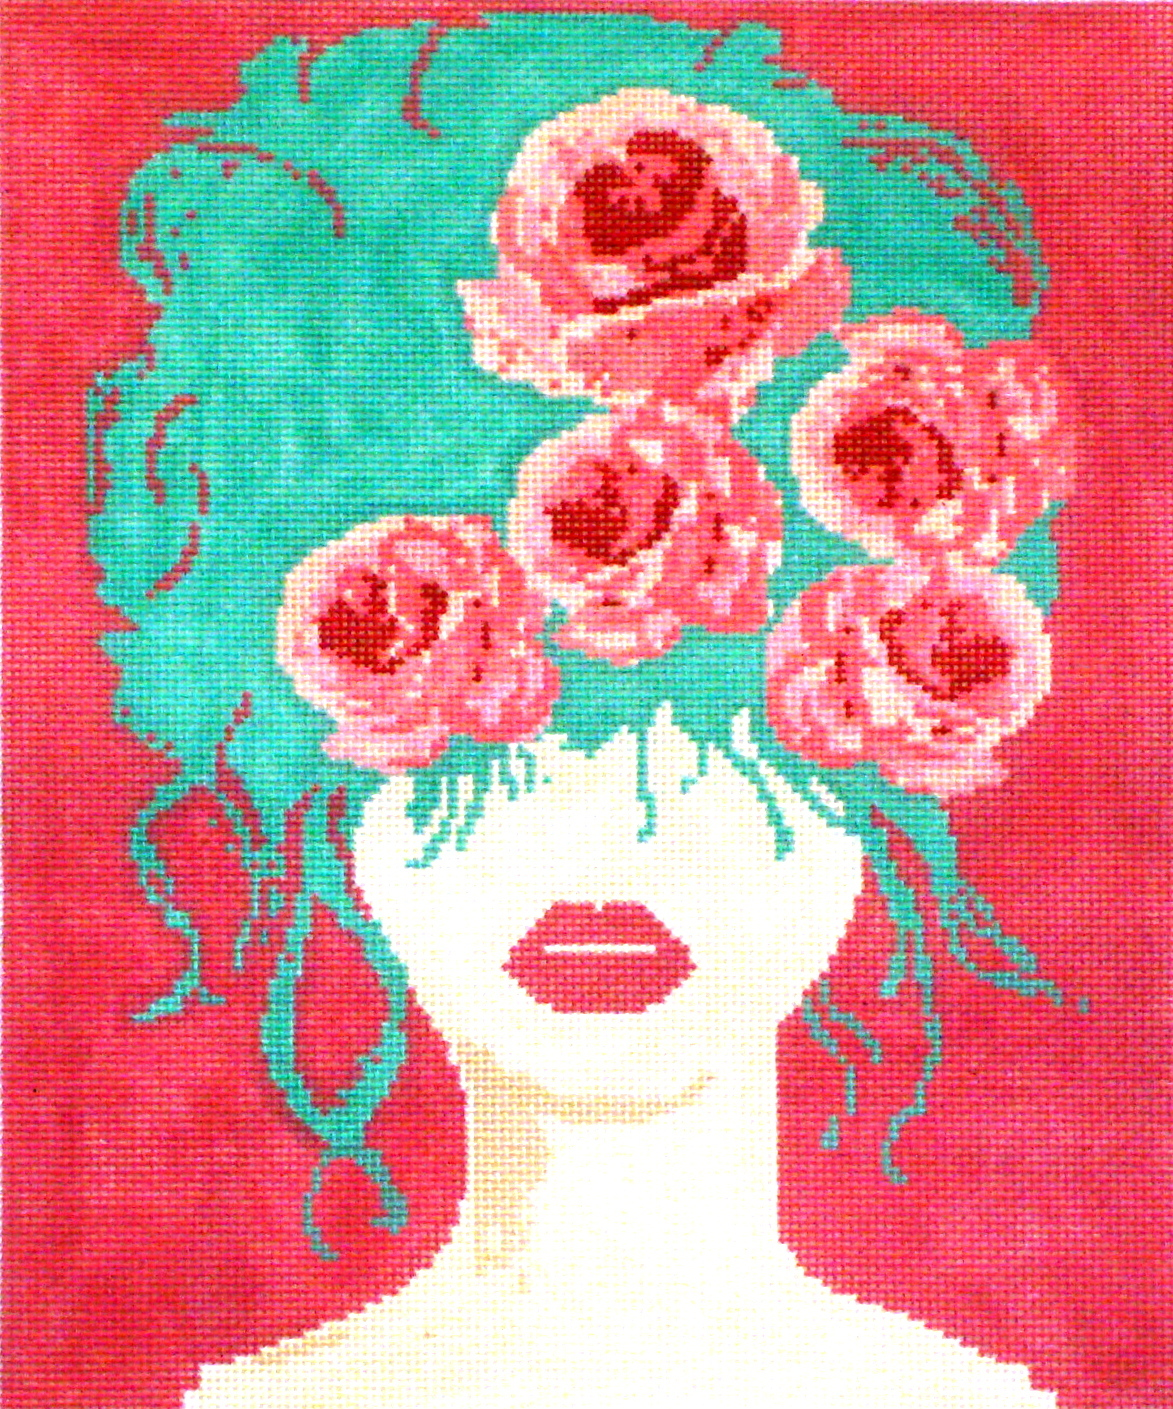 Rose Girl    (stitched  painted needlepoint canvas from Viola) 19*BAG-421